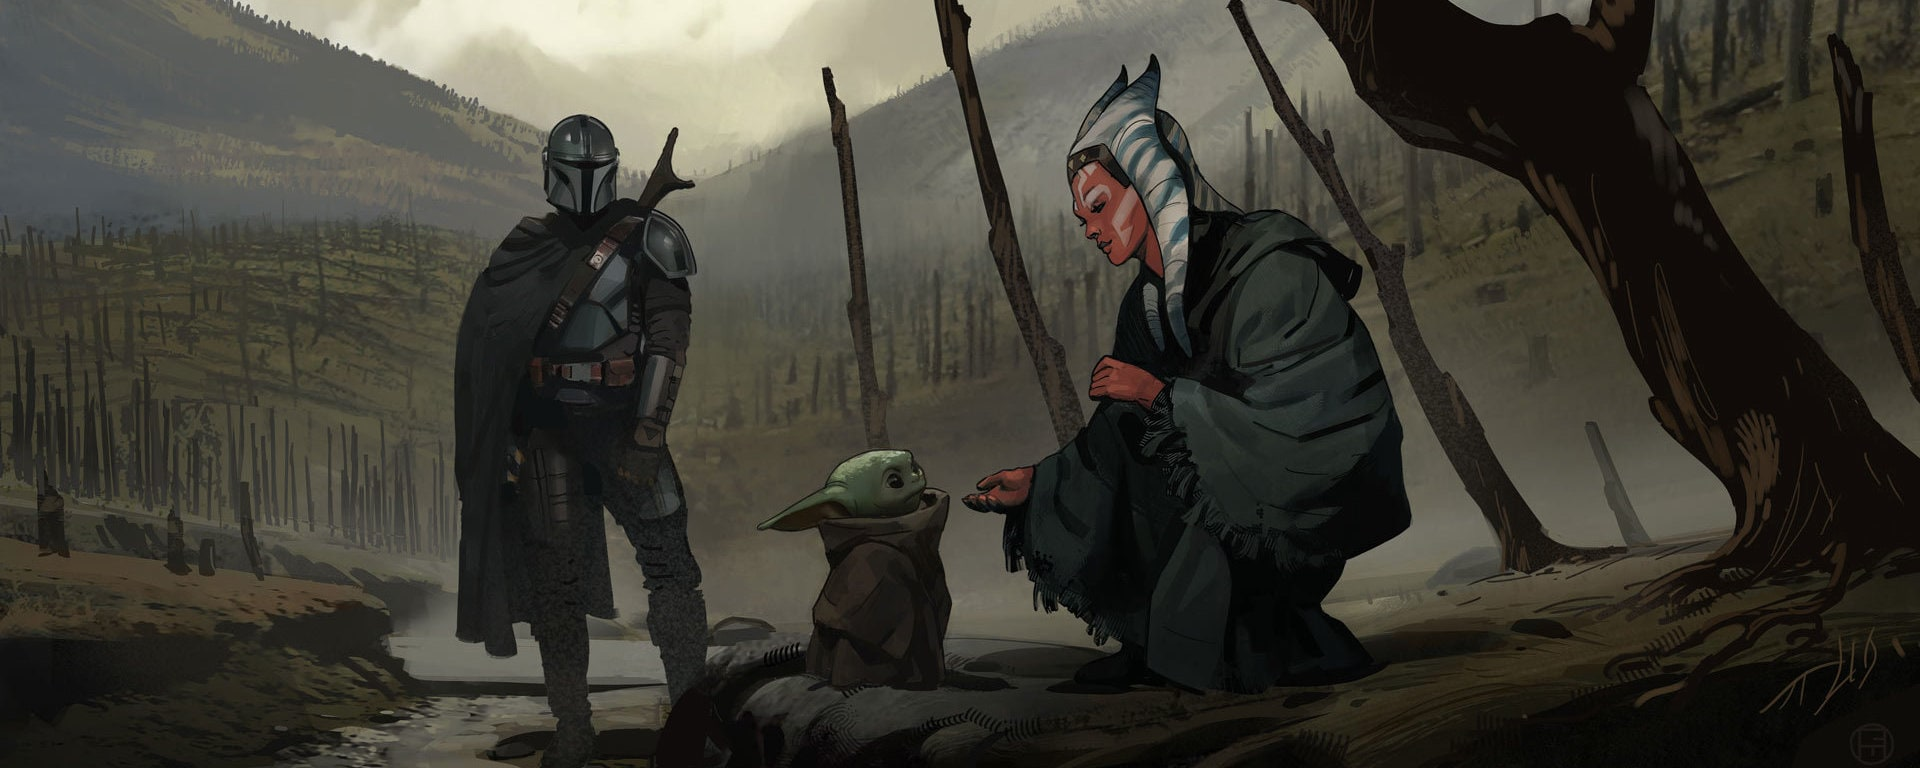 The Mandalorian: Chapter 13 Concept Art Gallery